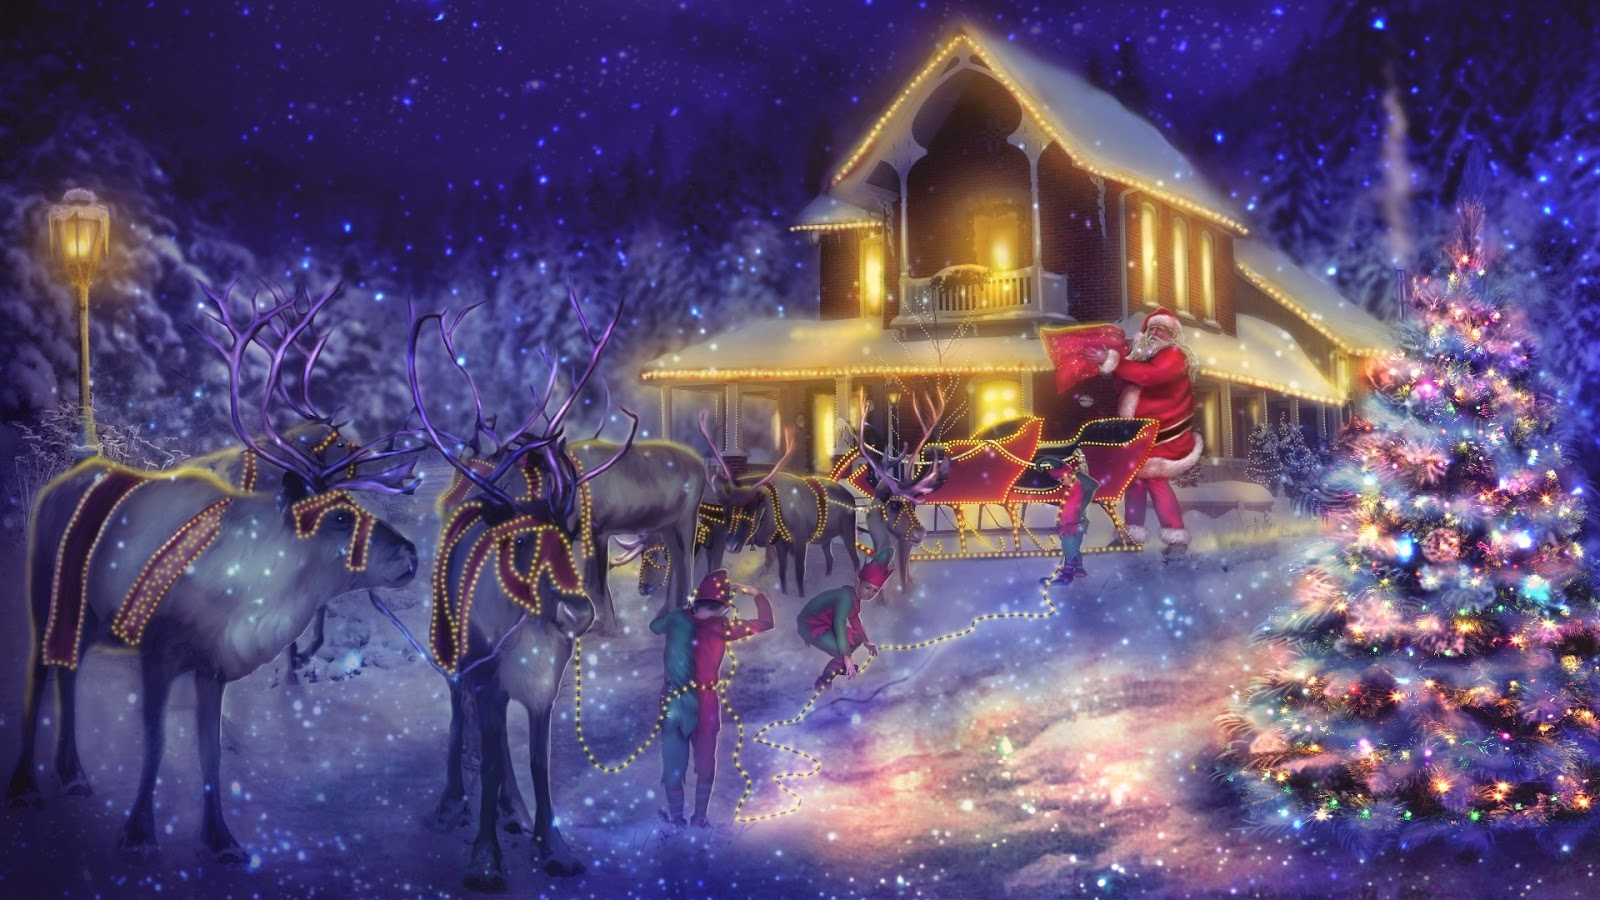 santa-arriving-with-elves-and-reindeer-sleigh-at-house-graphics-image.jpg